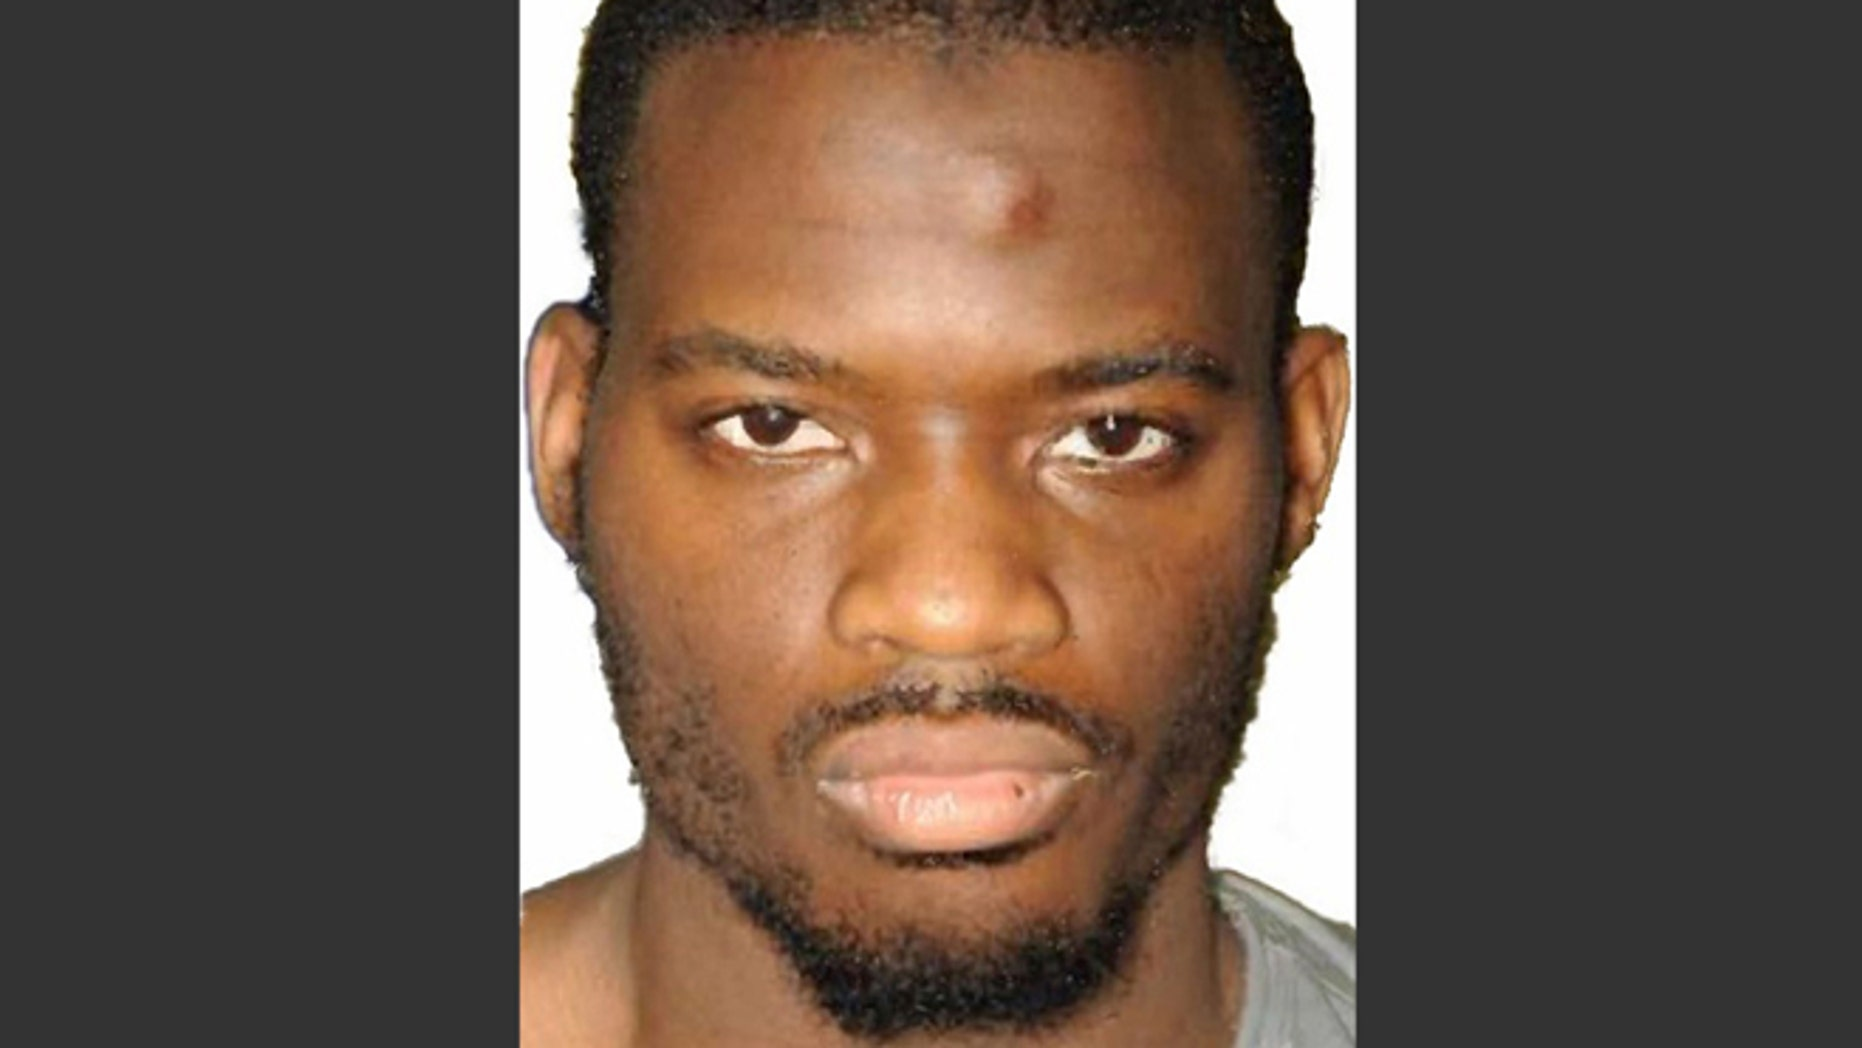 This undated file image released by the Metropolitan Police on Dec. 19, 2013 shows Michael Adebolajo. Adebolajo was found guilty of slaying 25-year-old soldier Lee Rigby and was sentenced to life; accomplice Michael Adebowale received a minimum of 45 years.